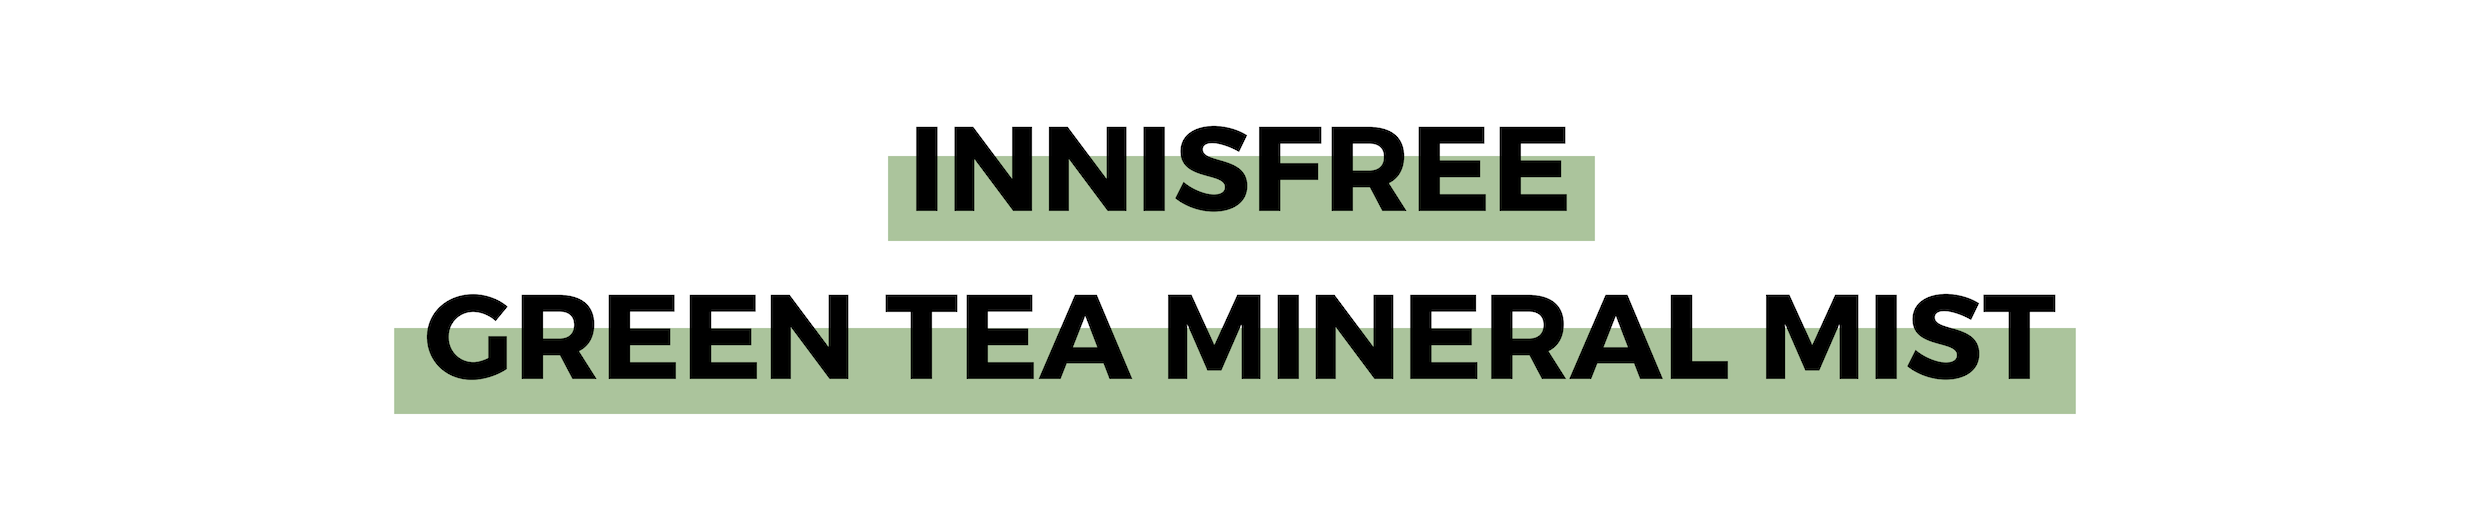 INNISFREE GREEN TEA MINERAL MIST.png